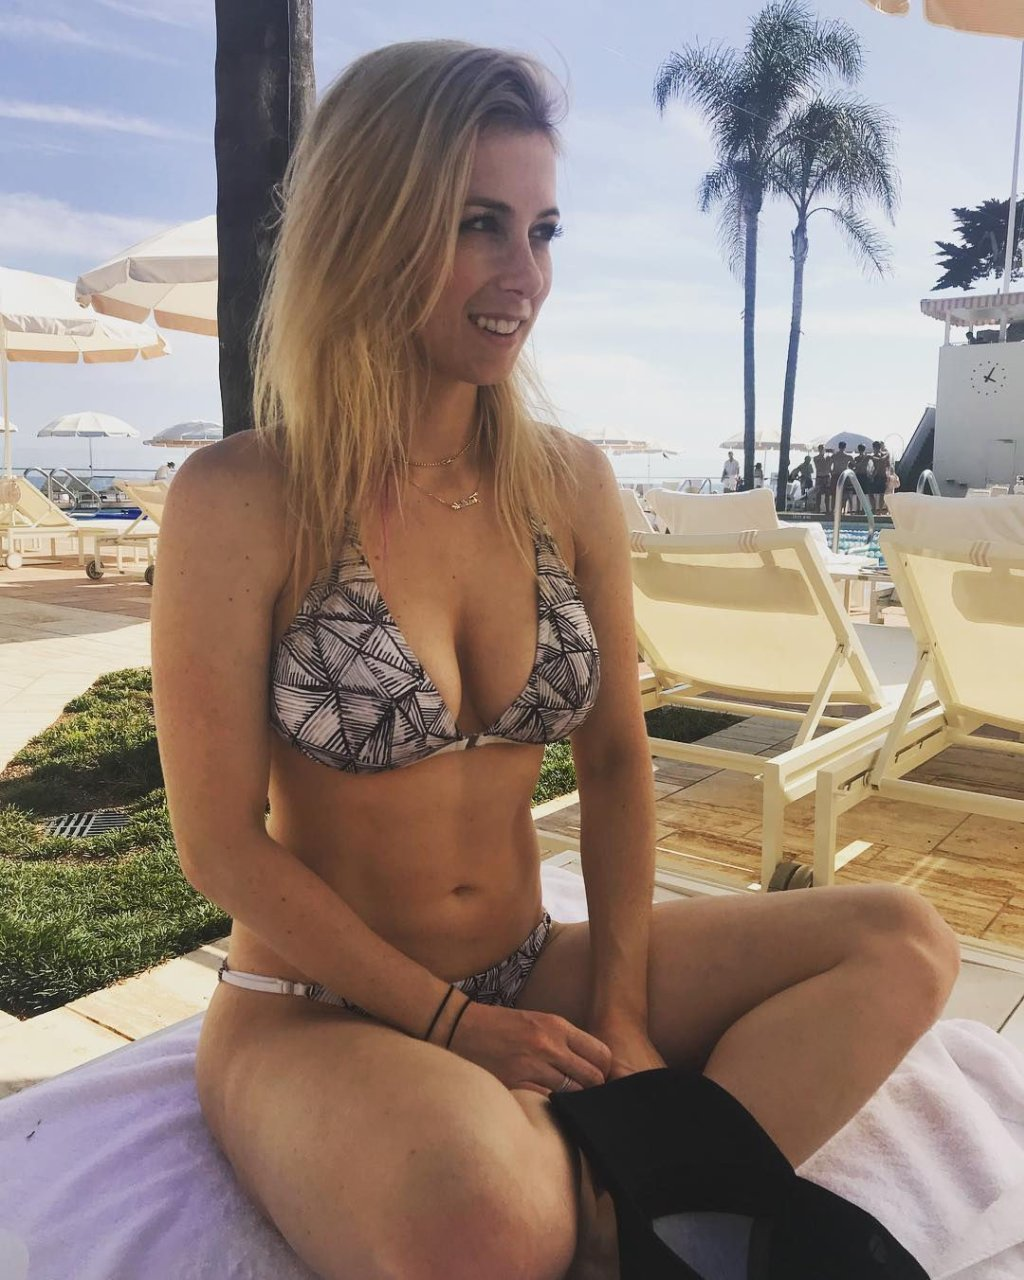 Boobs Iliza Shlesinger naked (52 photos), Ass, Hot, Boobs, legs 2018